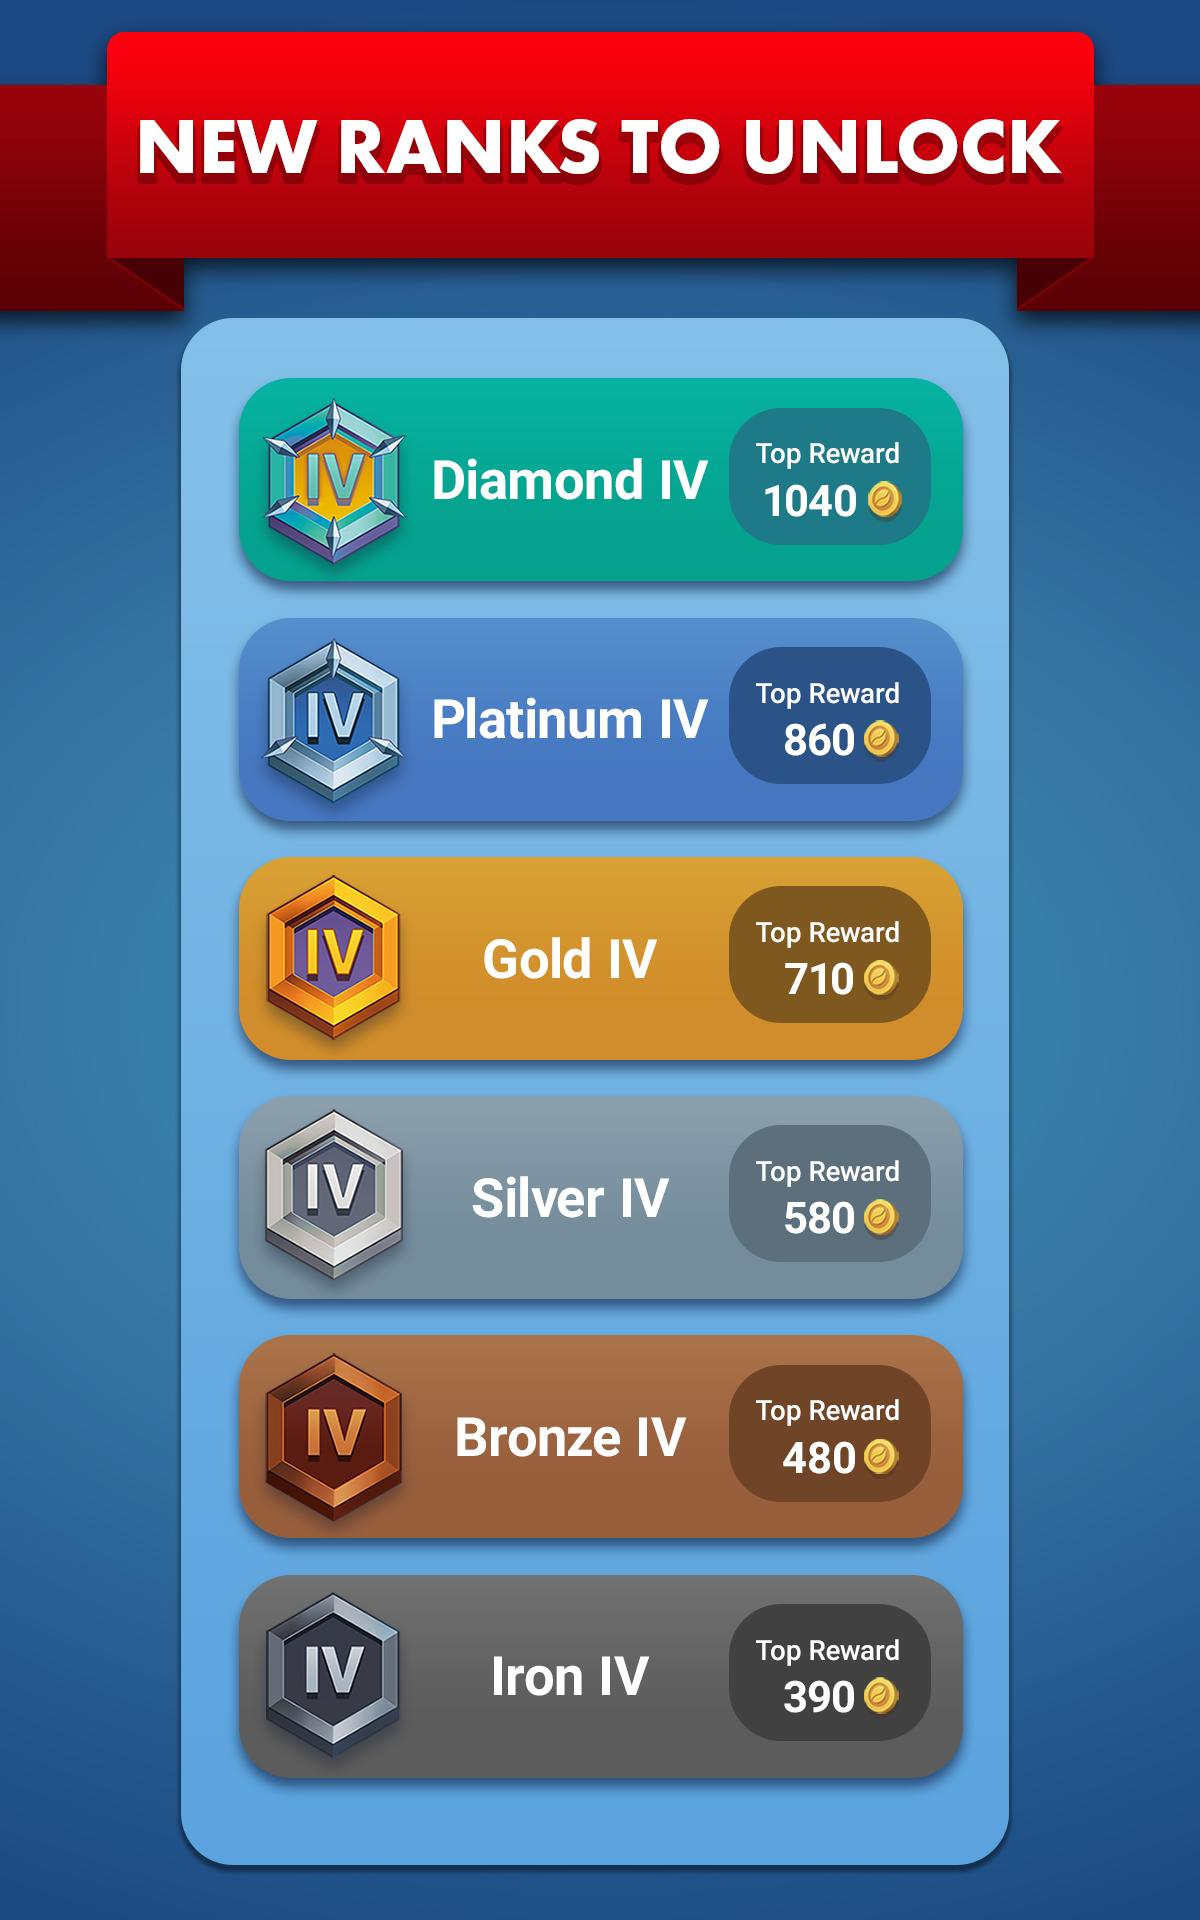 Dominos Party - Classic Domino Board Game 4.9.4 Screenshot 20